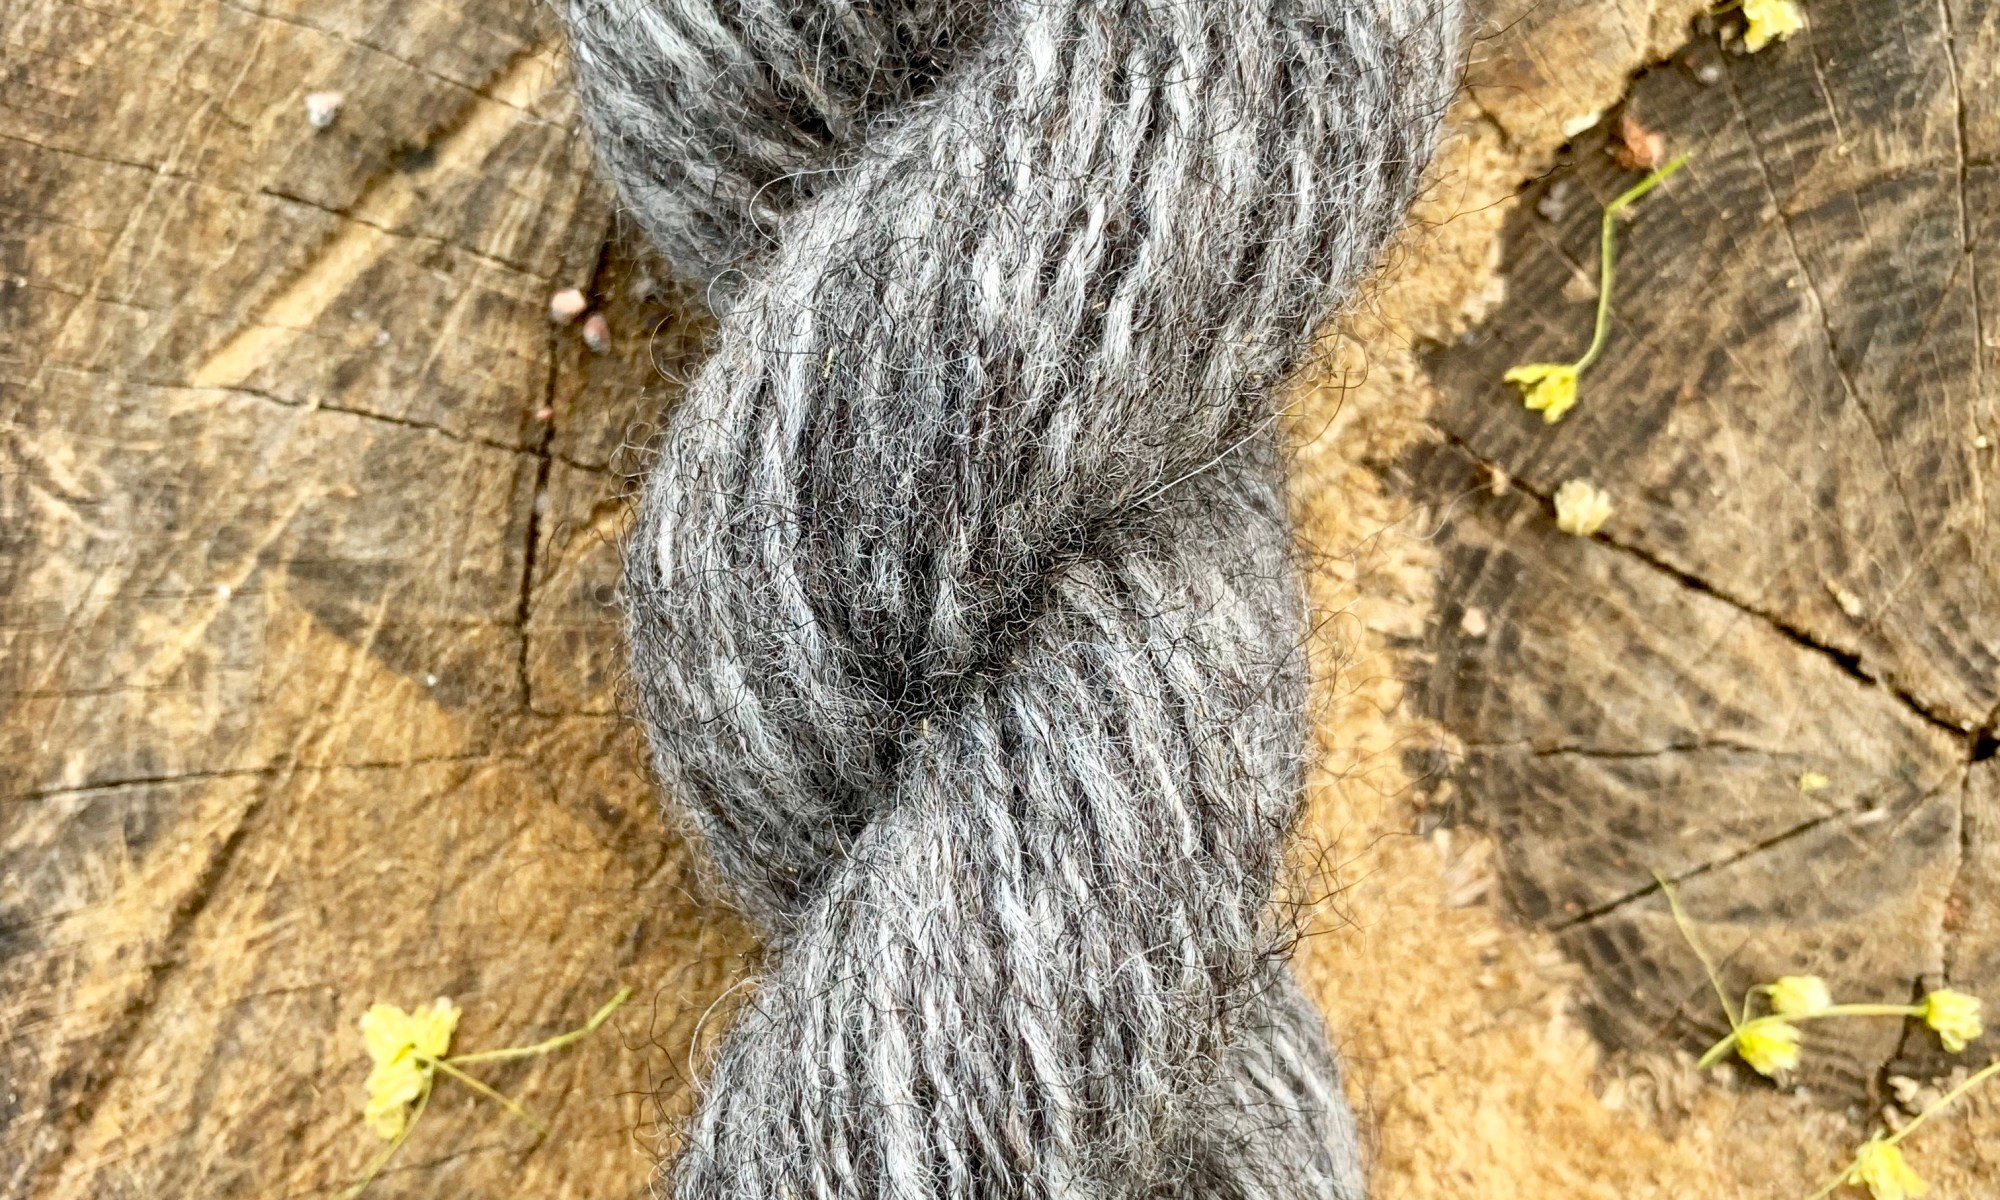 2-ply yarn of Gute wool, spun with longdraw from hand-carded rolags.